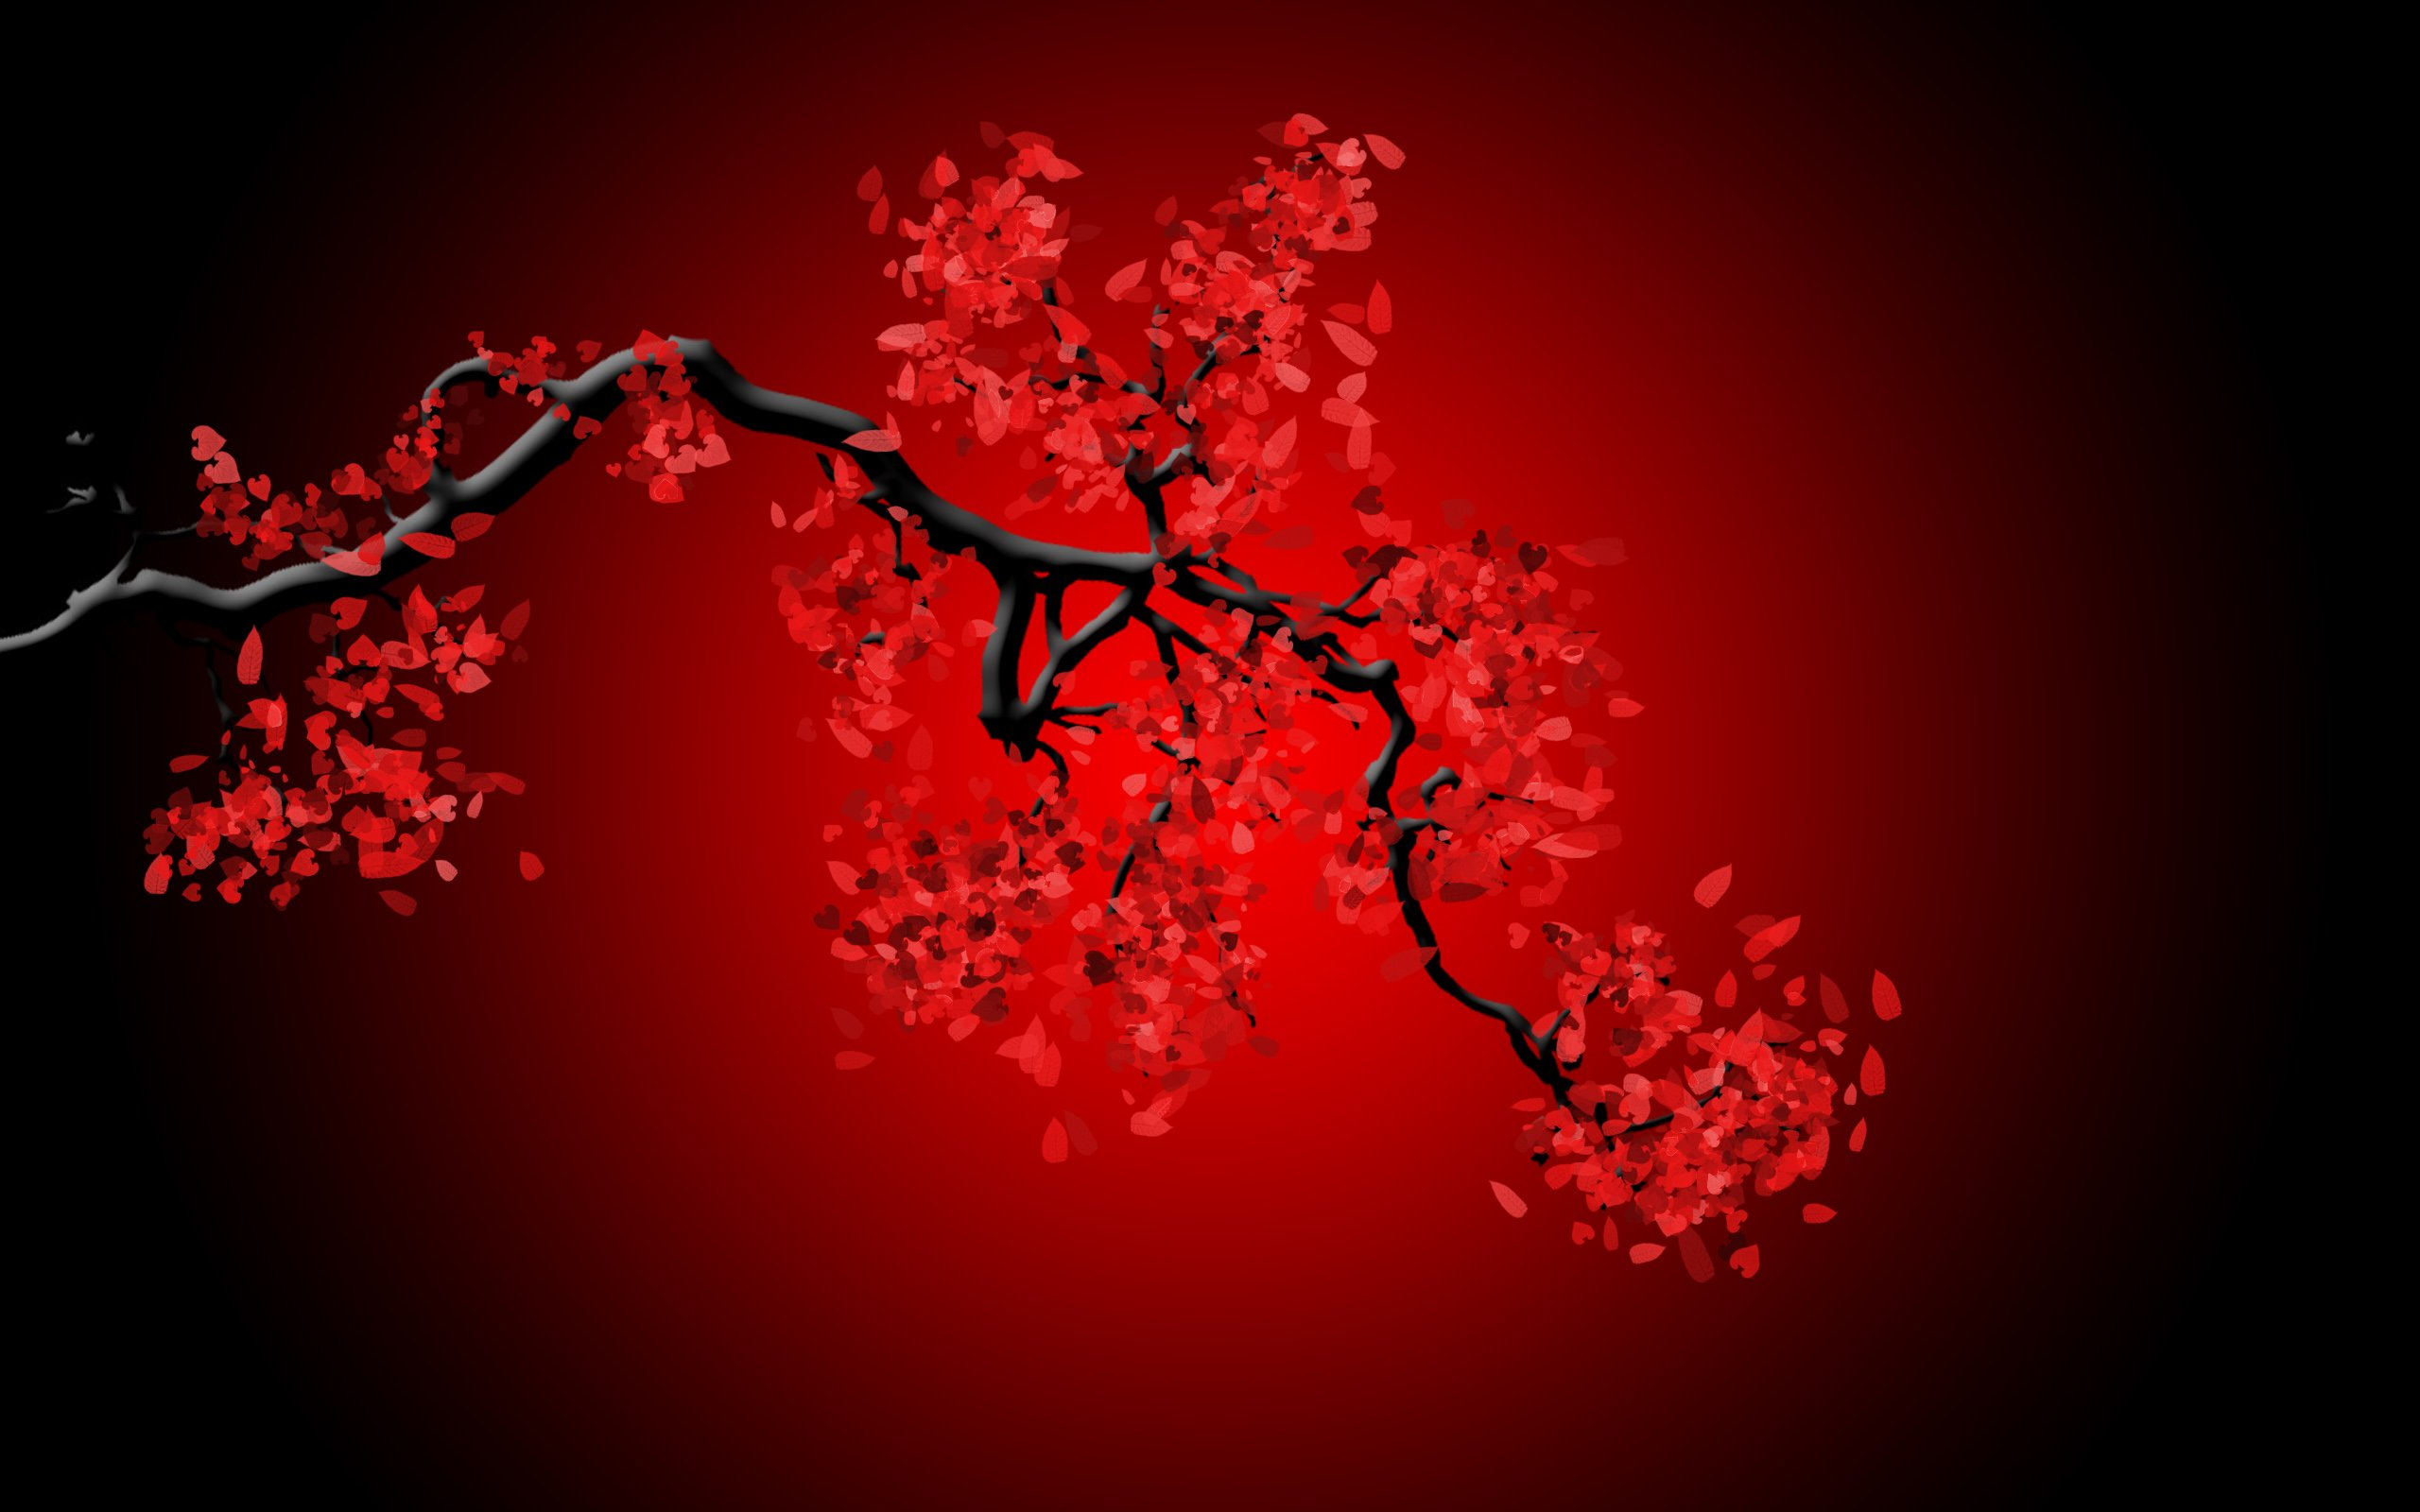 hd red backgrounds | HD Wallpaper, Backgrounds, Tumblr Backgrounds ...